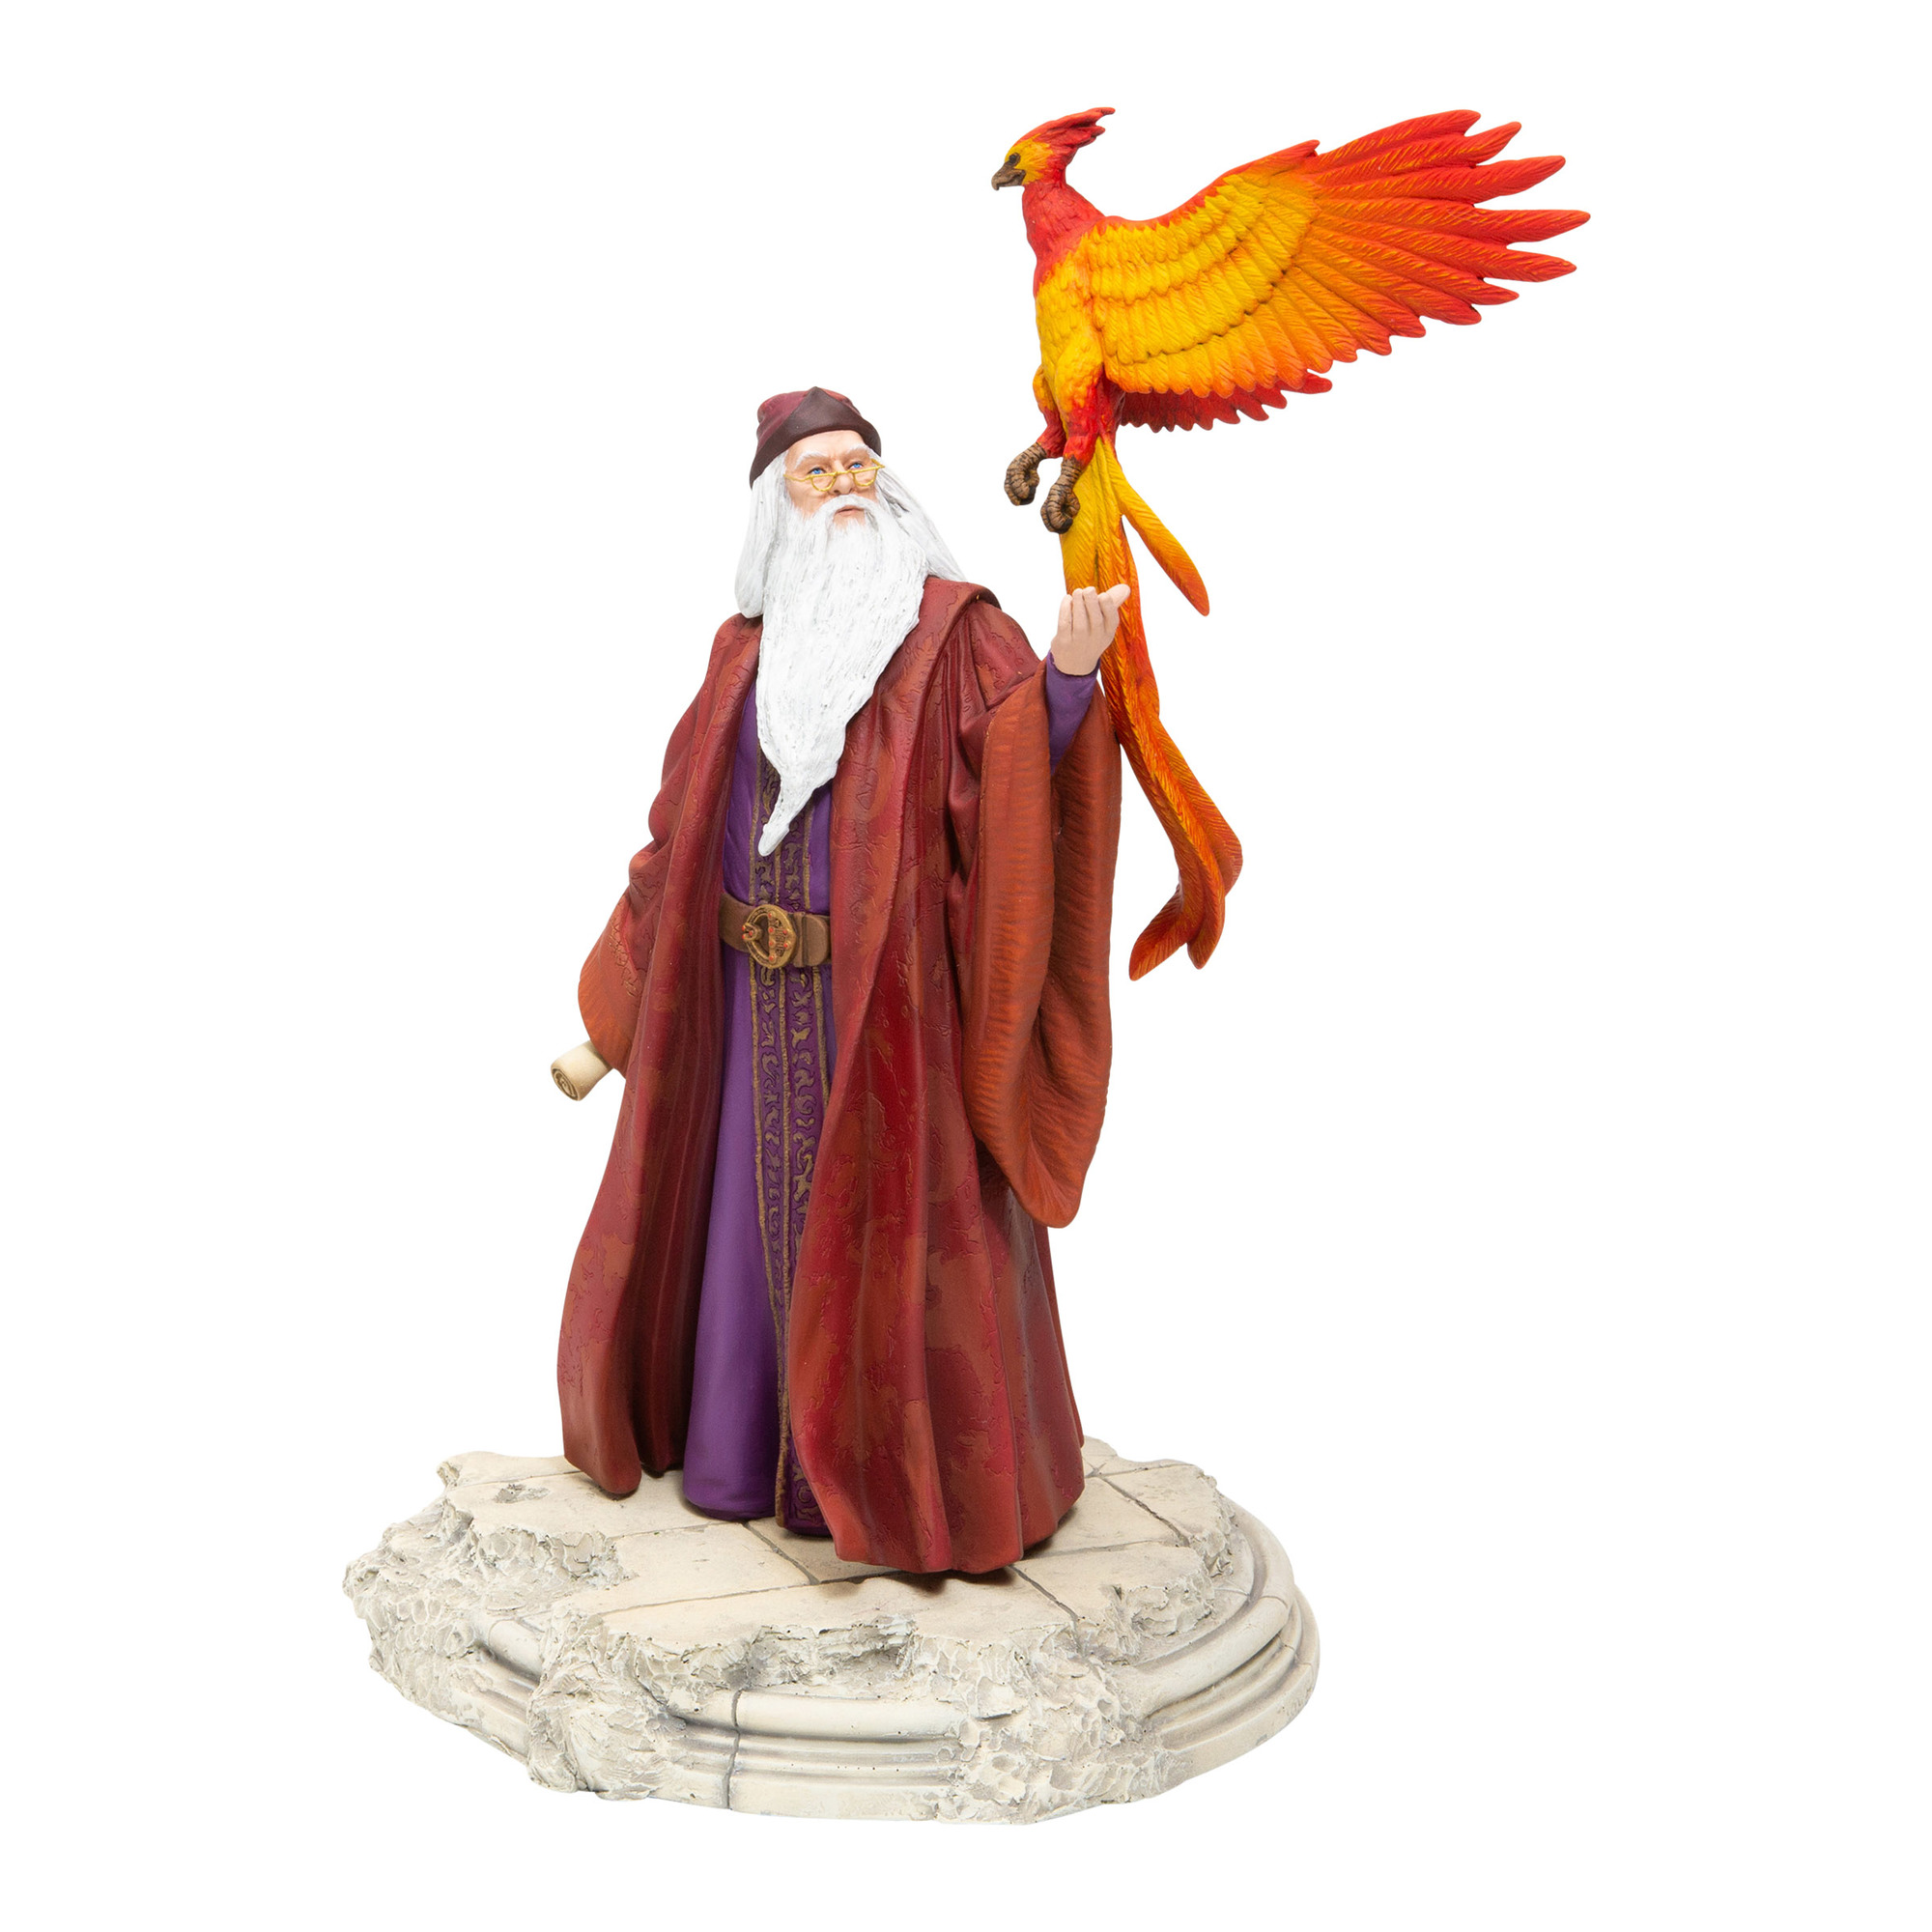 Wizarding World of Harry Potter Professor Dumbledore Figurine